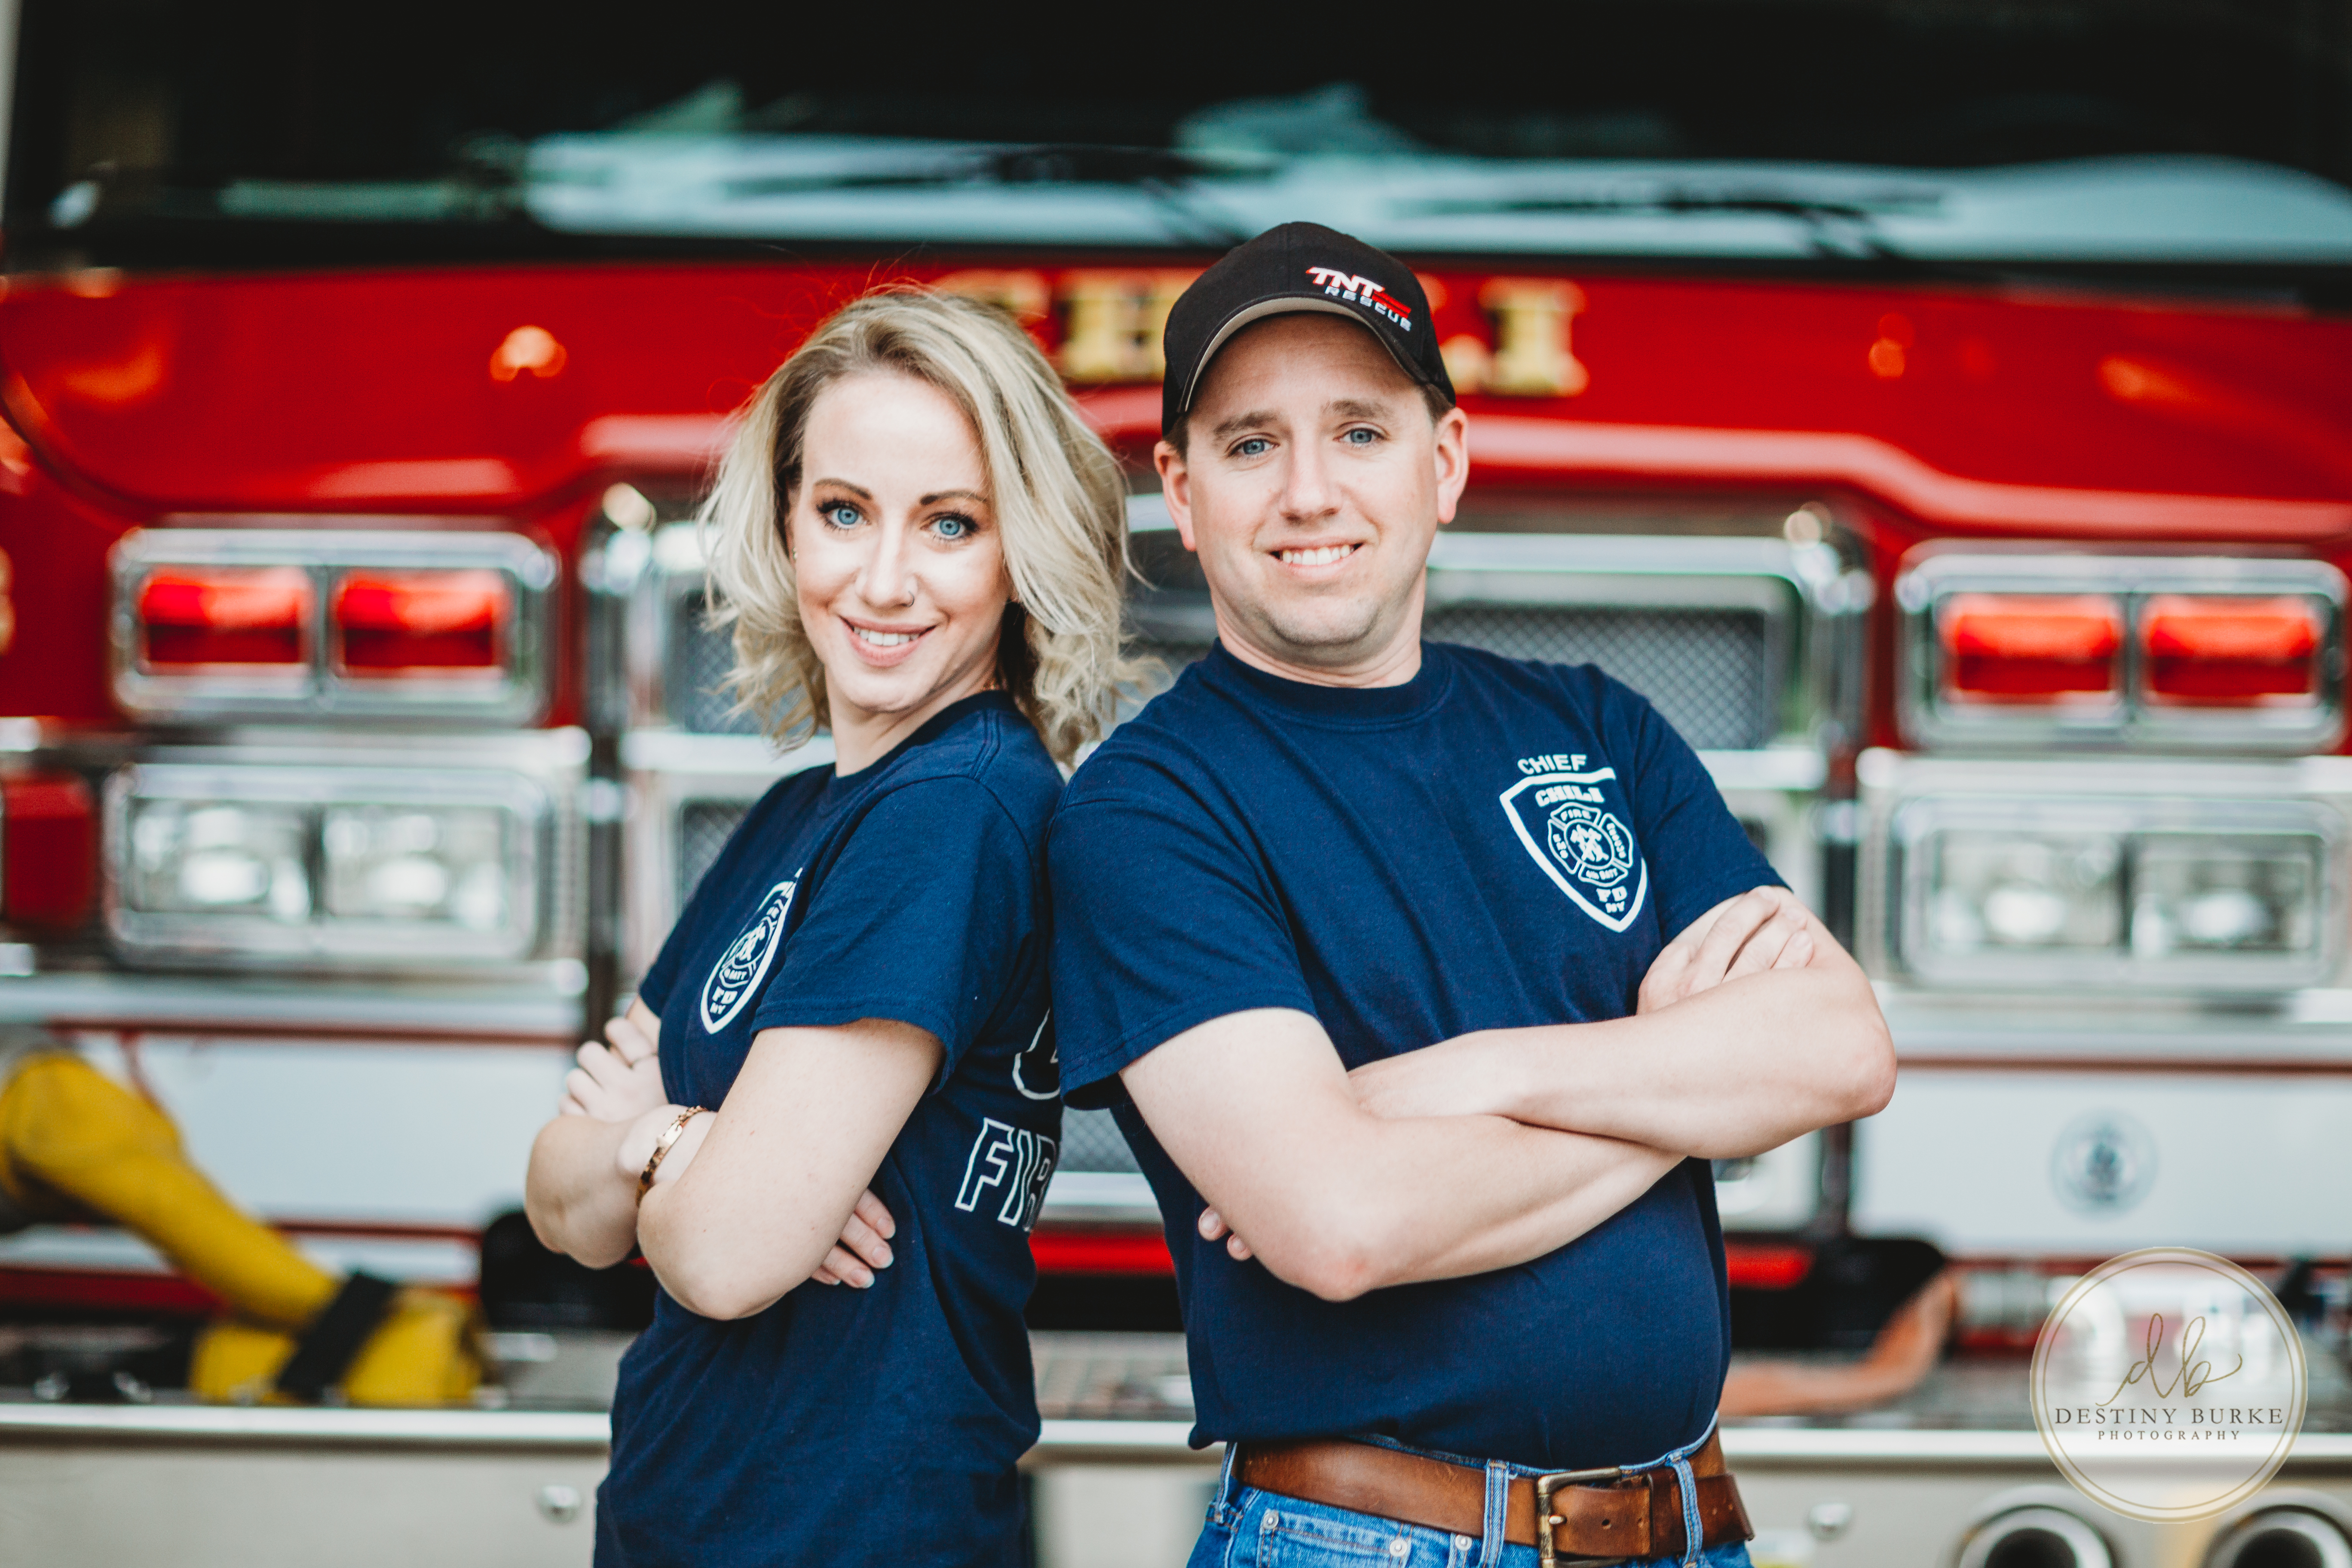 Fire Department Family Photography Upstate Rochester NY